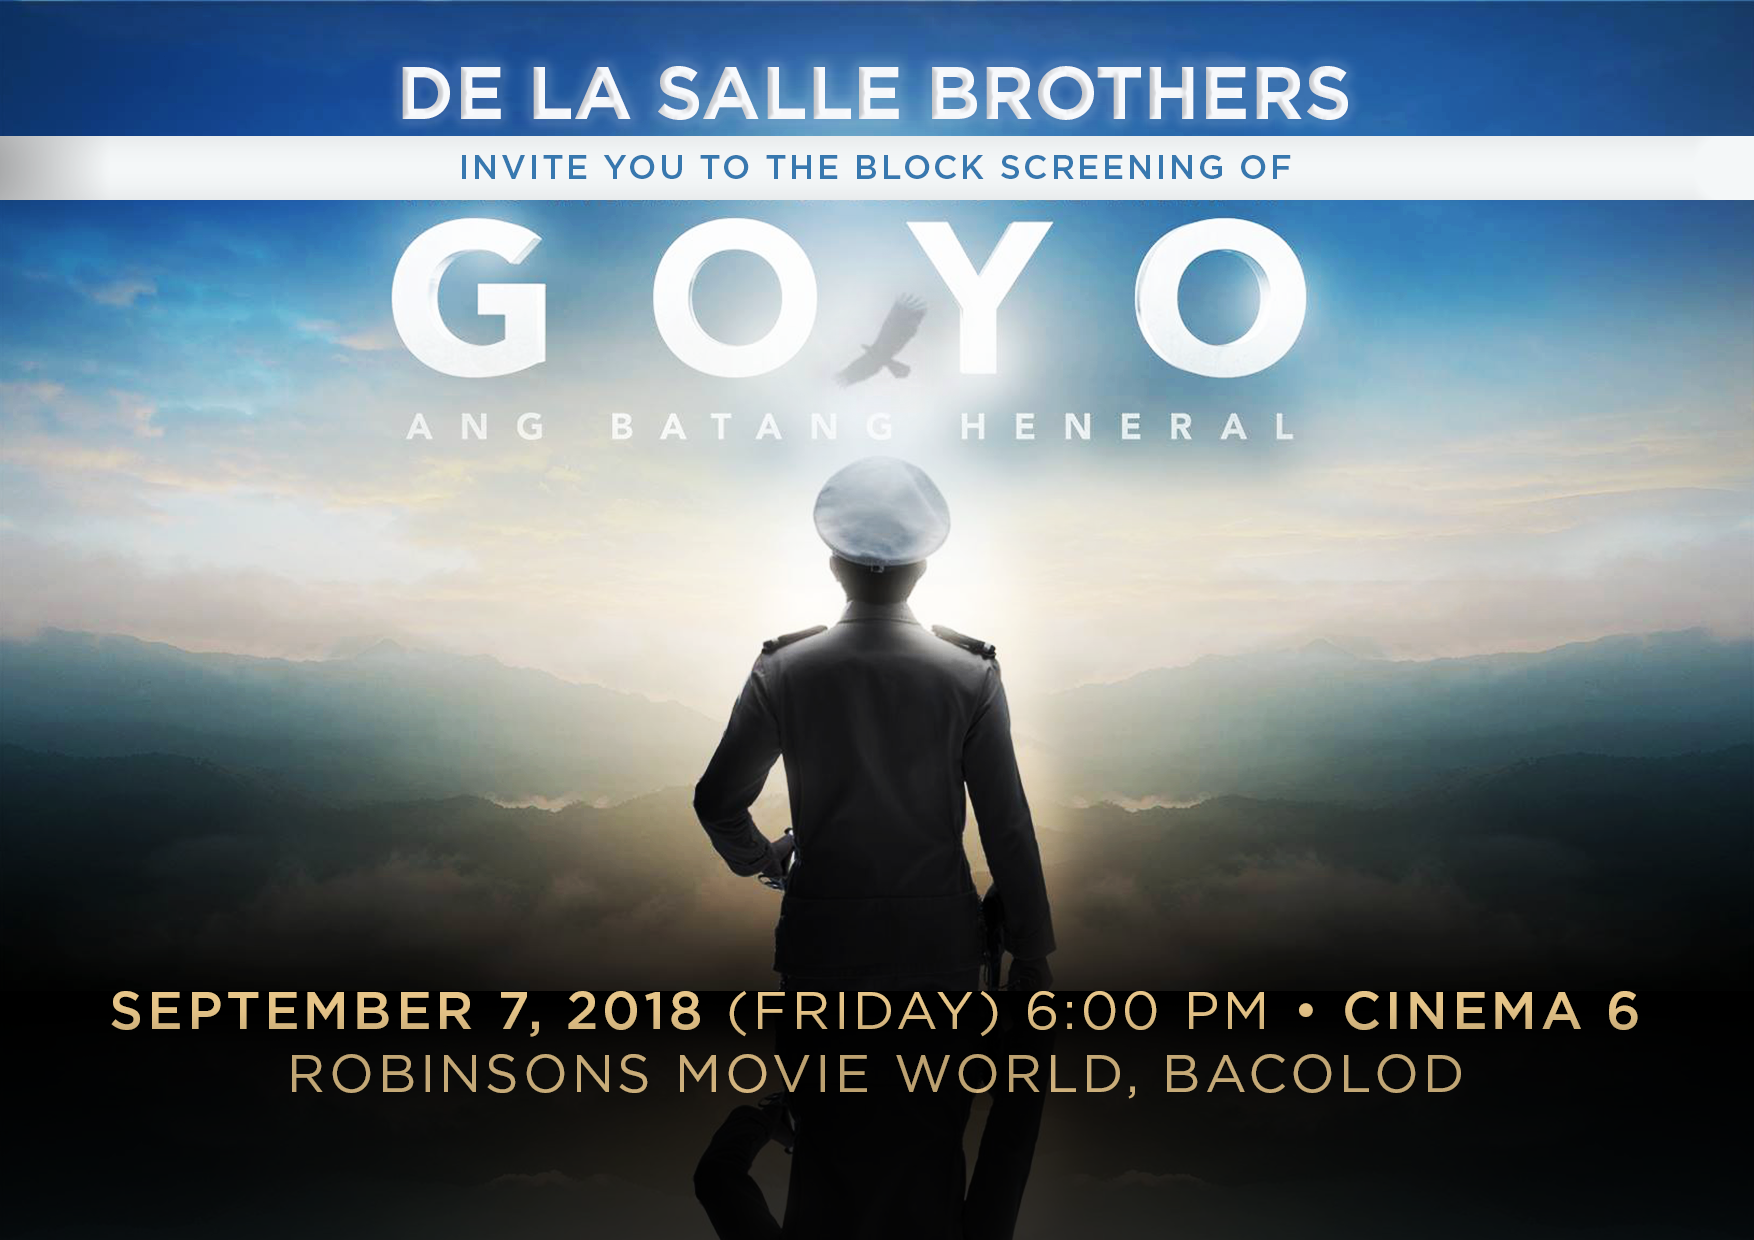 Be-Our-Guest-Movie-Block-Screening-Of-Goyo-Ang-Batang-Heneral.png